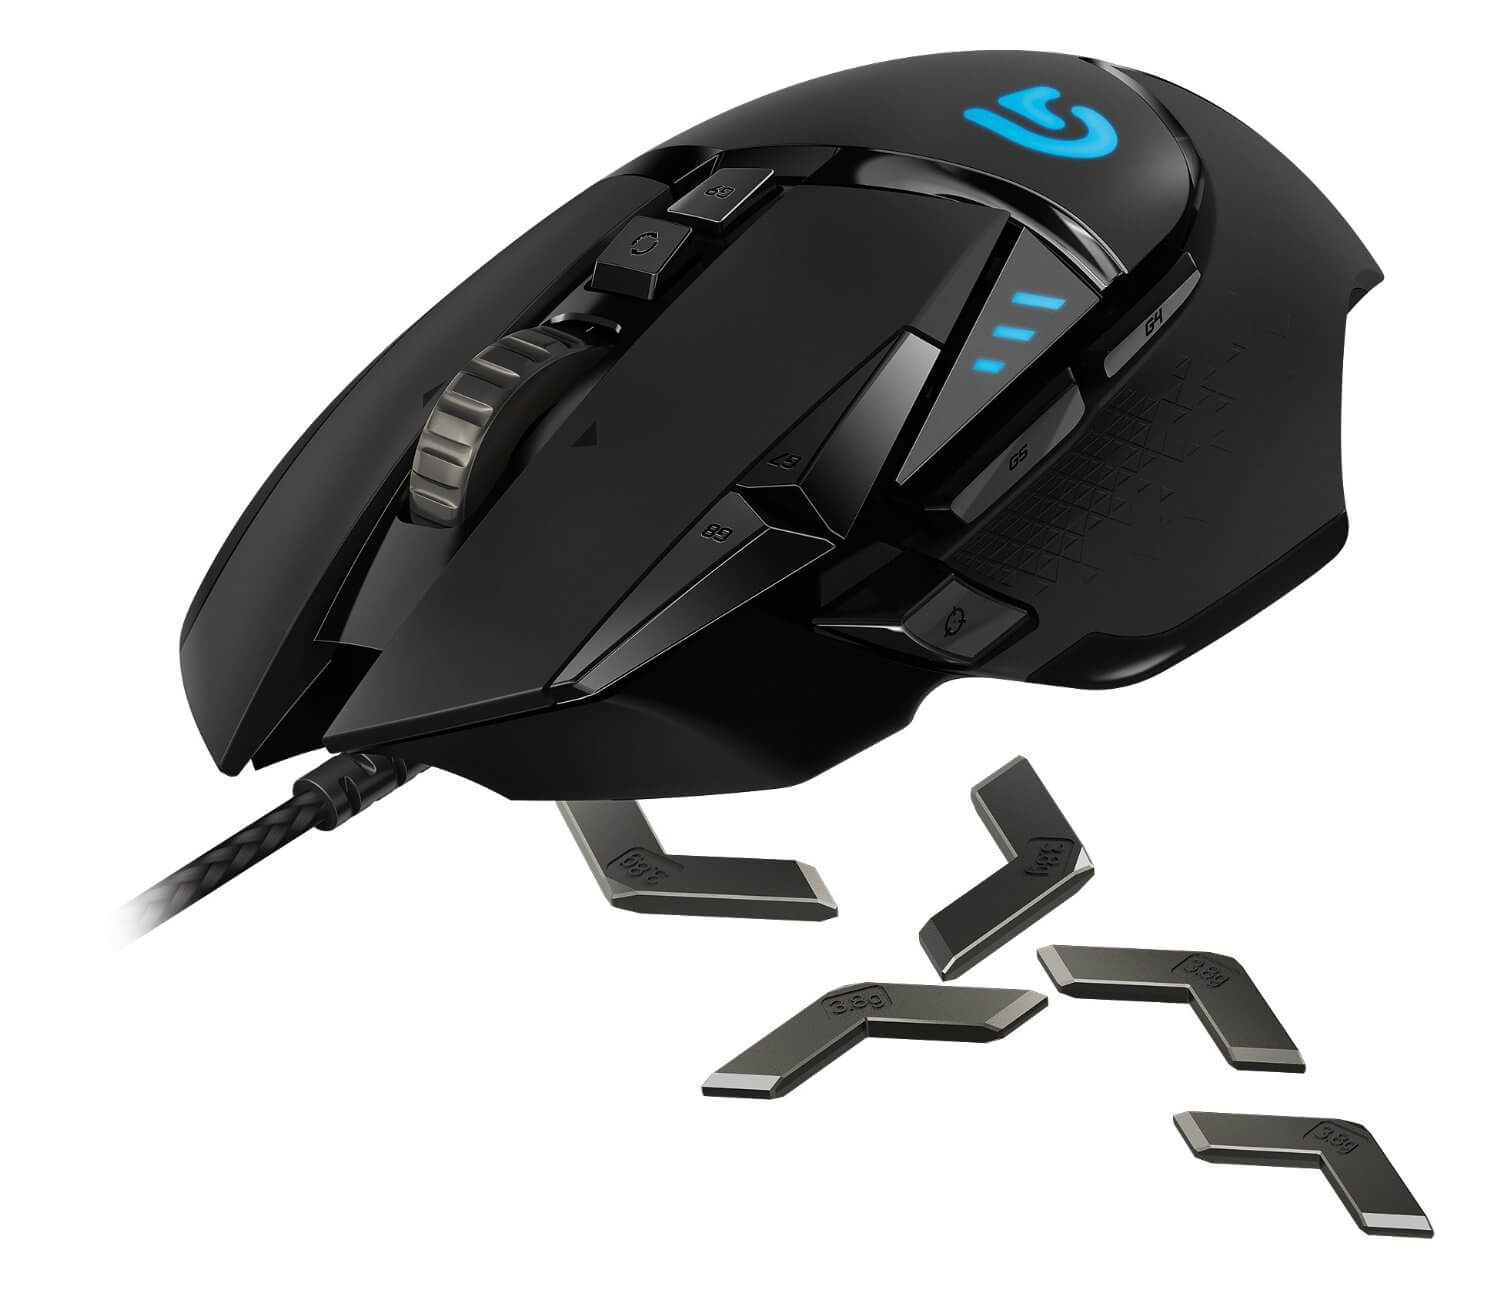 63c5fbd84a4 The Best Gaming Mouse You Can Buy for Your PC | Gaming Mouse